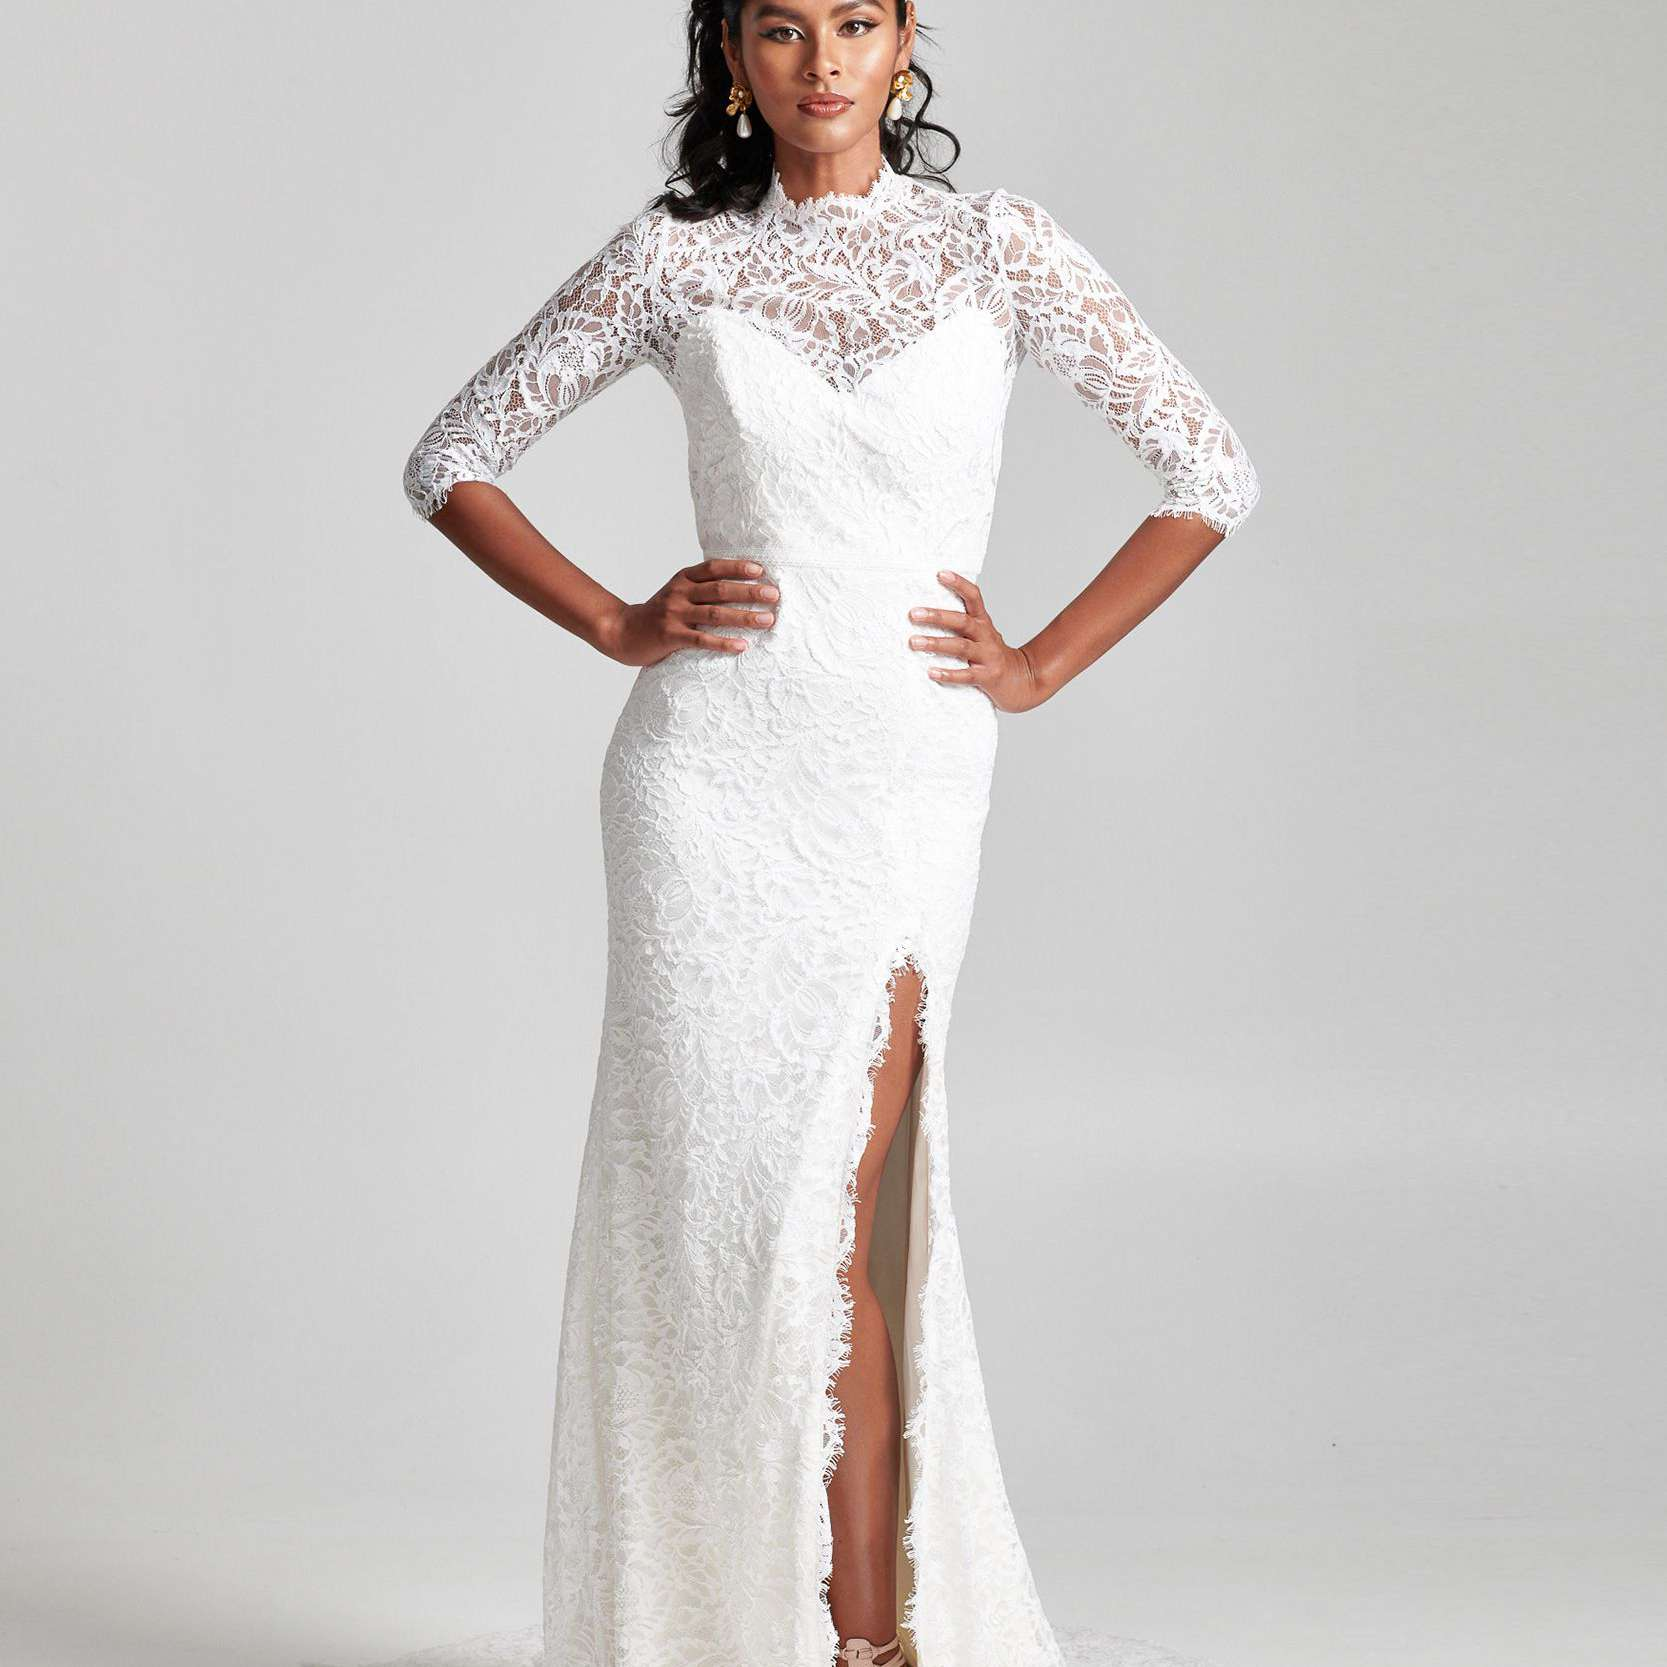 Model in floral lace dress with skirt slit and high neck lace long sleeve topper